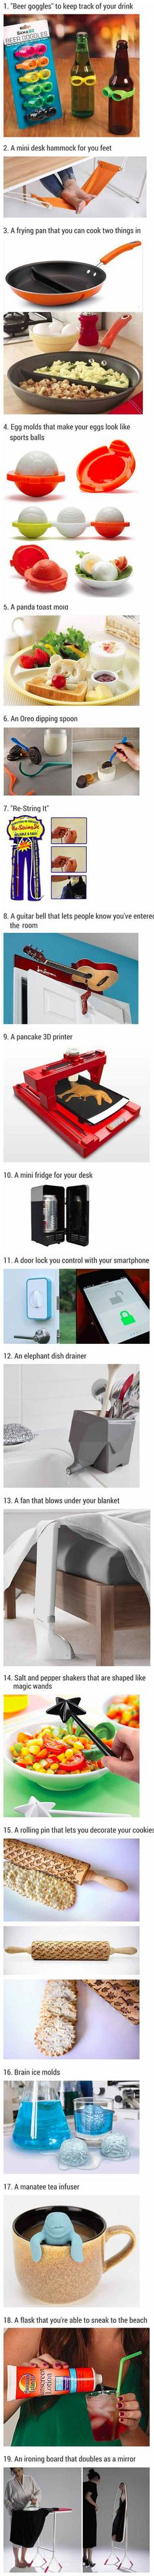 You might want these cool home gadgets and accessories but probably do not need them.